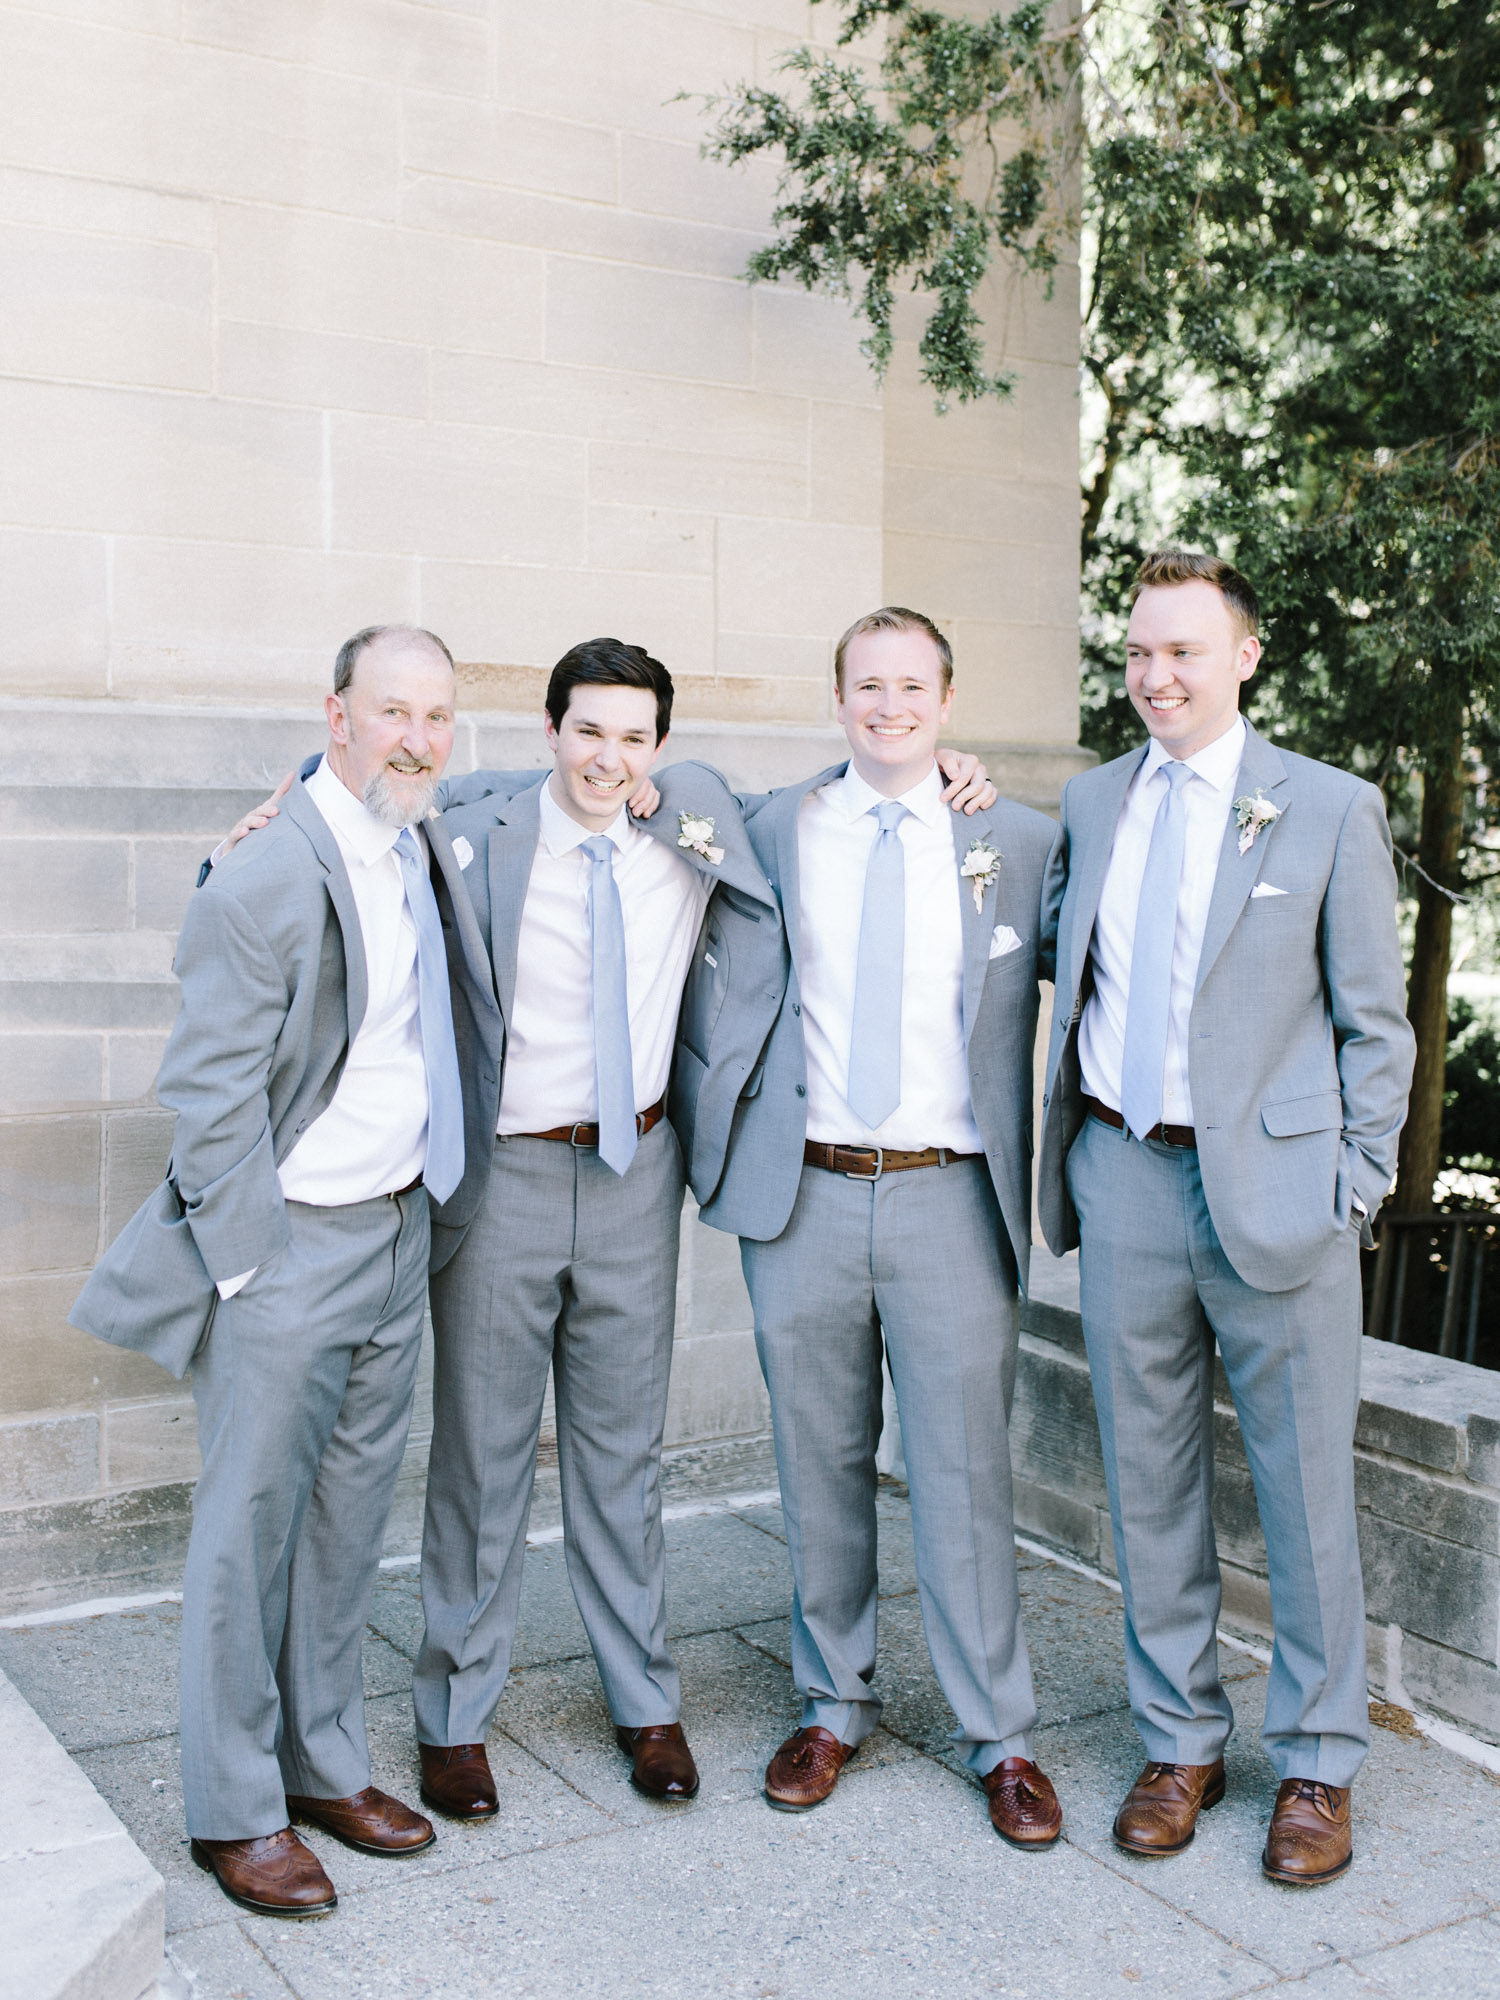 Smiling groomsmen in gray tuxedos pose for a casual photo outside an Ann Arbor, Michigan church